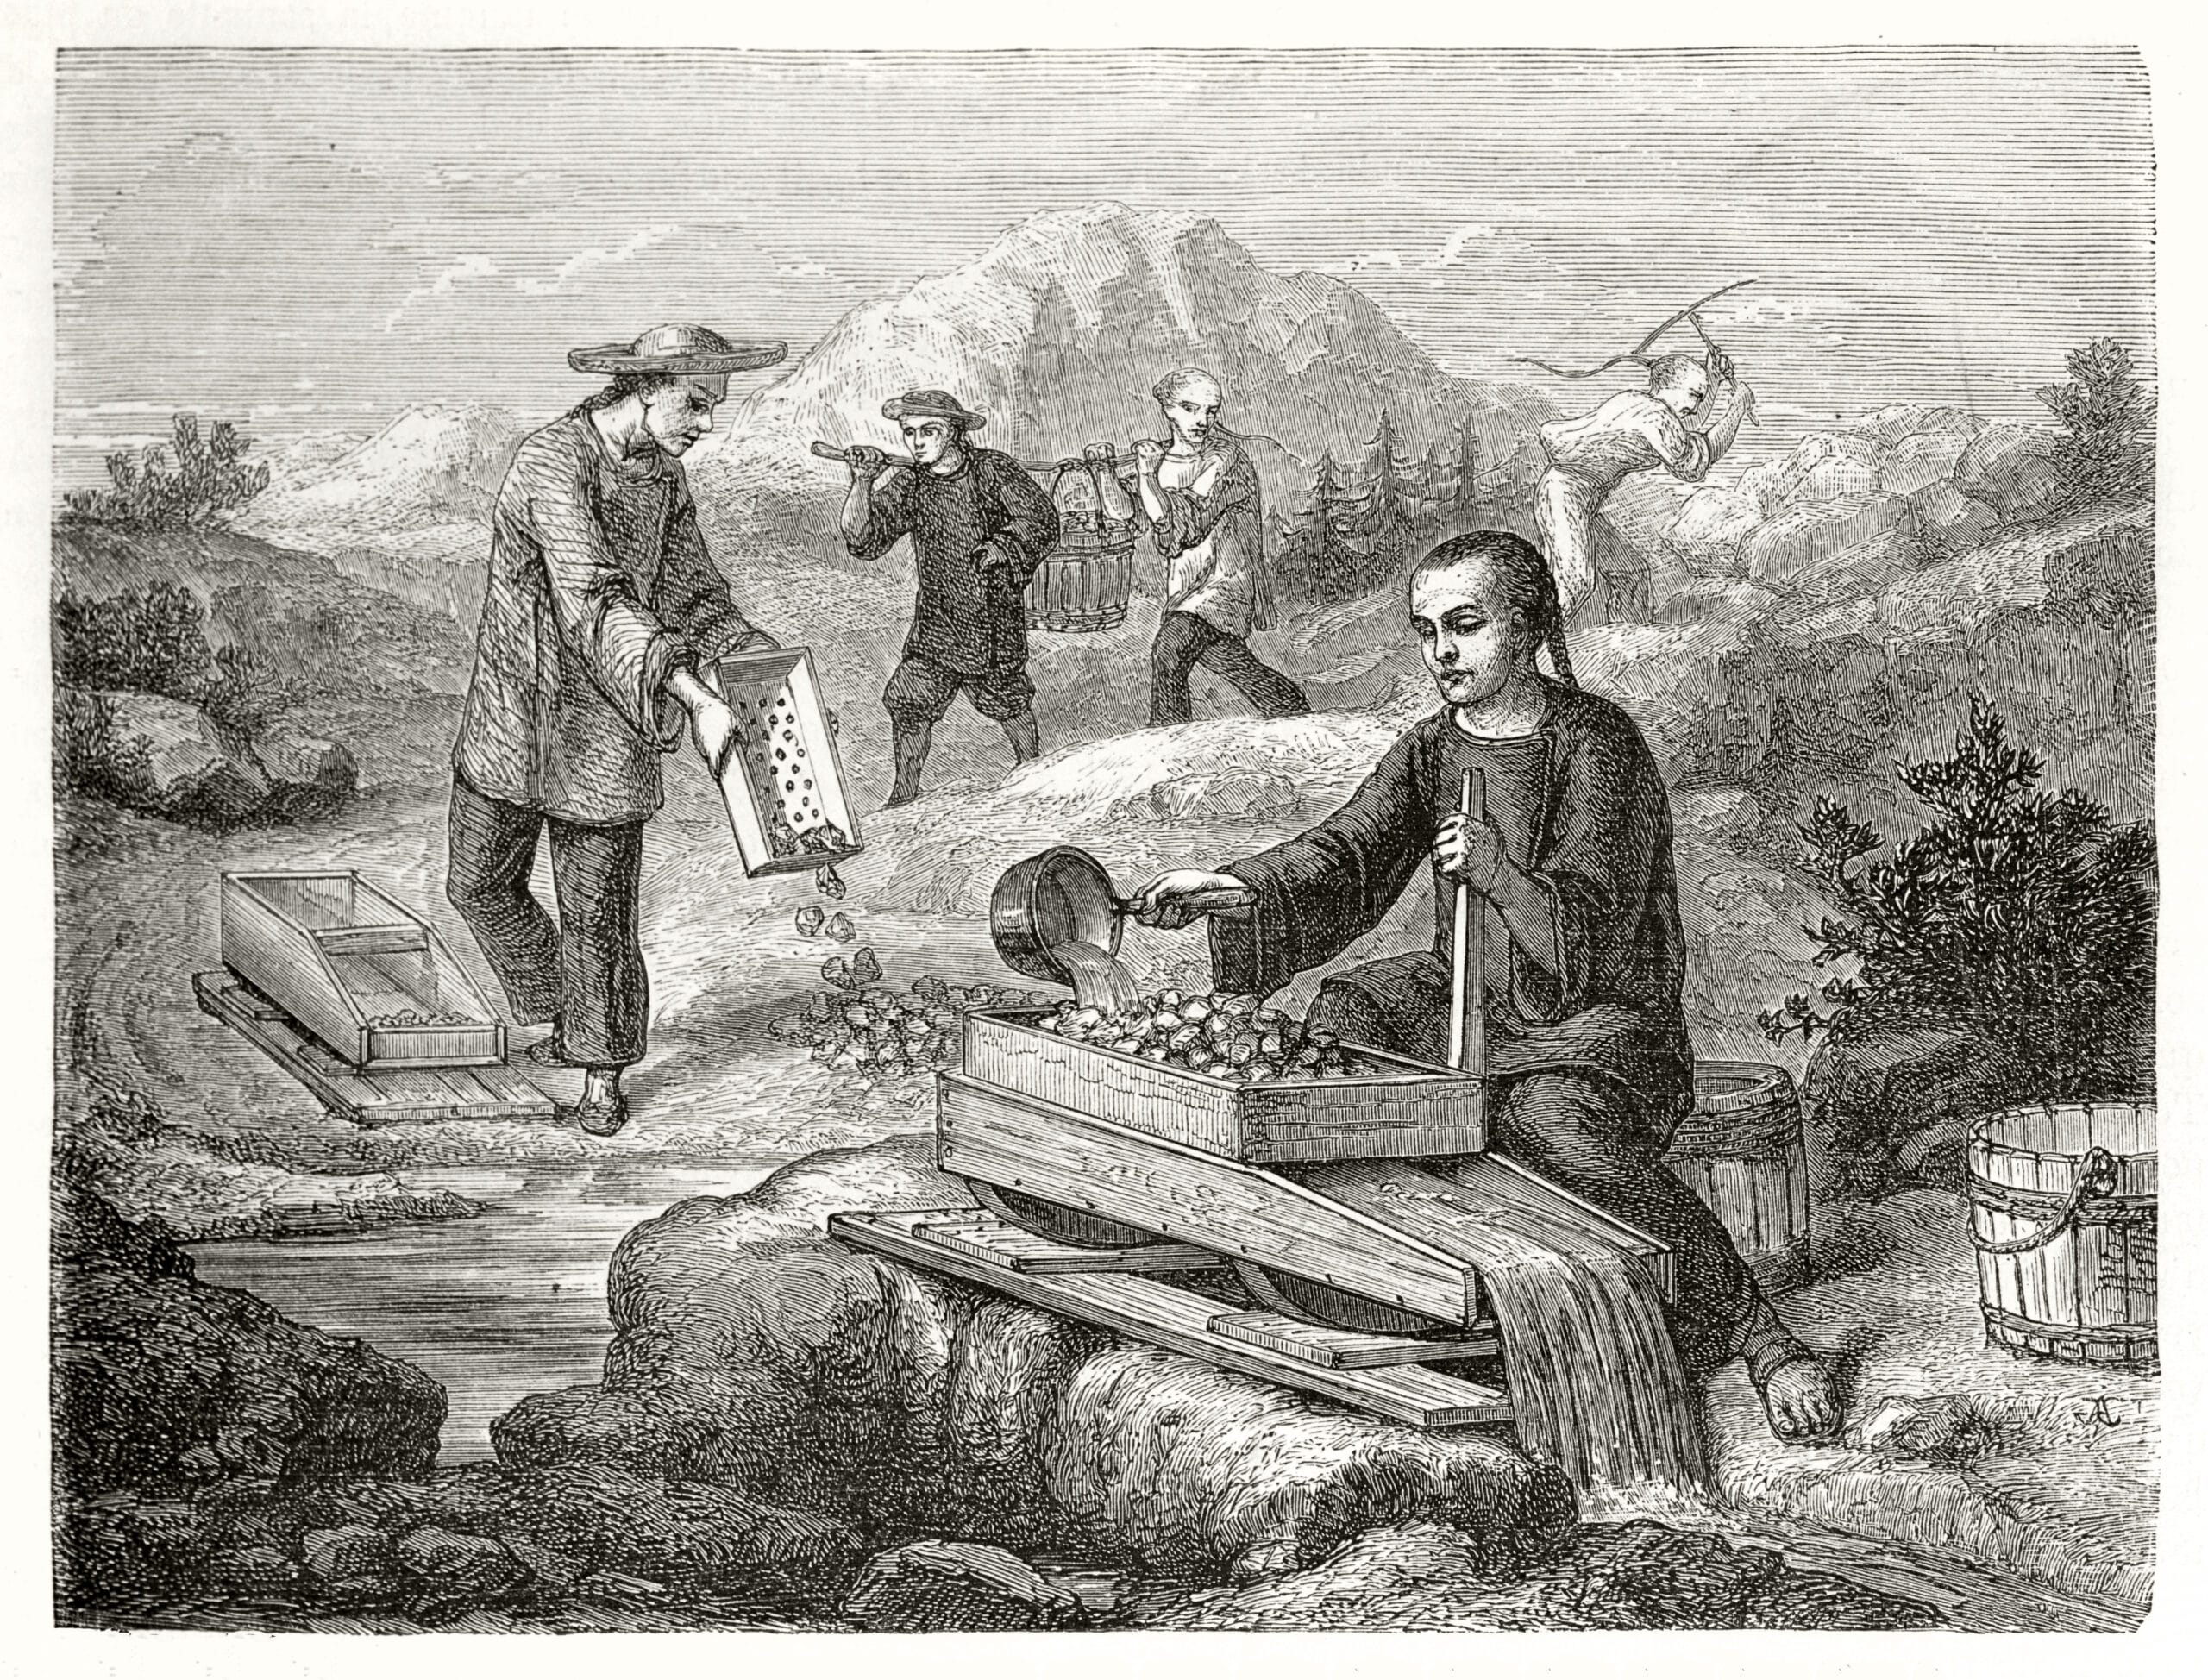 Old illustration of Chinese miners in California washing gold-bearing sand. Created by Chassevent after previous engraving by unknown author, published on Le Tour du Monde, Paris, 1862